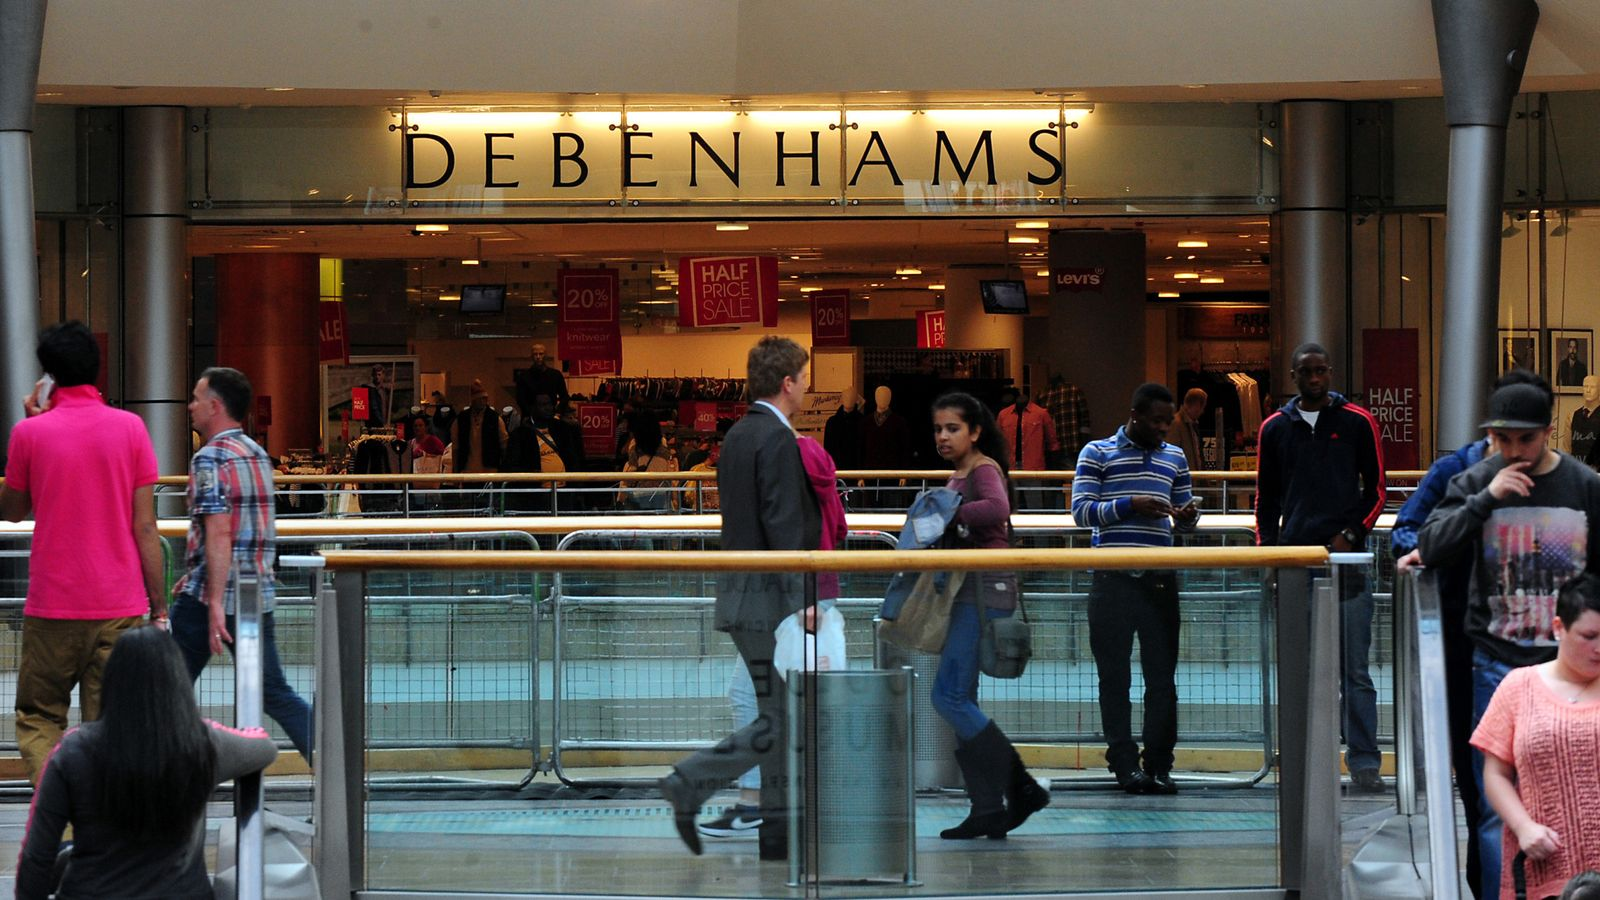 Debenhams in new profit alert amid tough trading